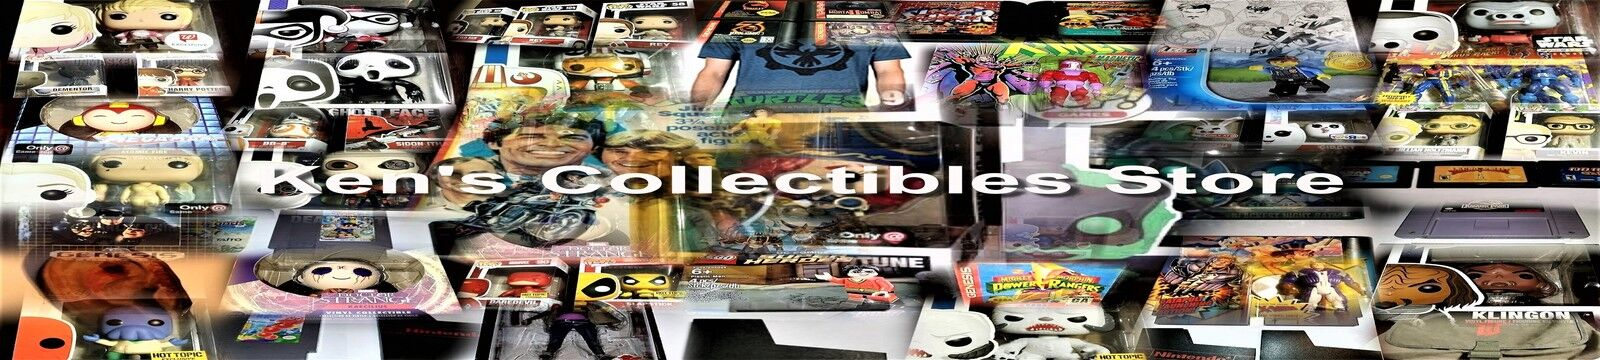 Ken's Collectibles Store